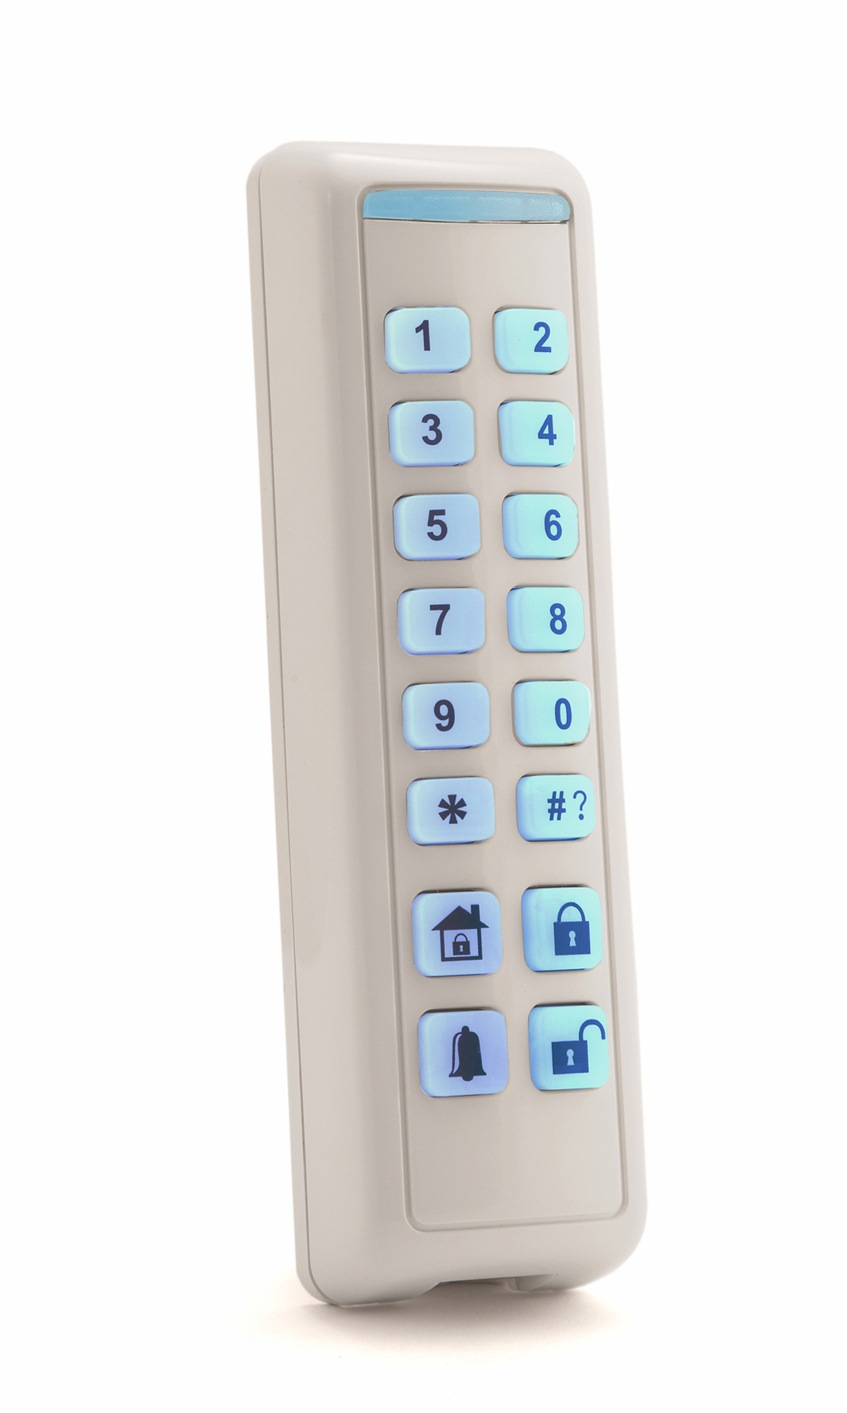 Risco-Lightsys-wireless-keypad1